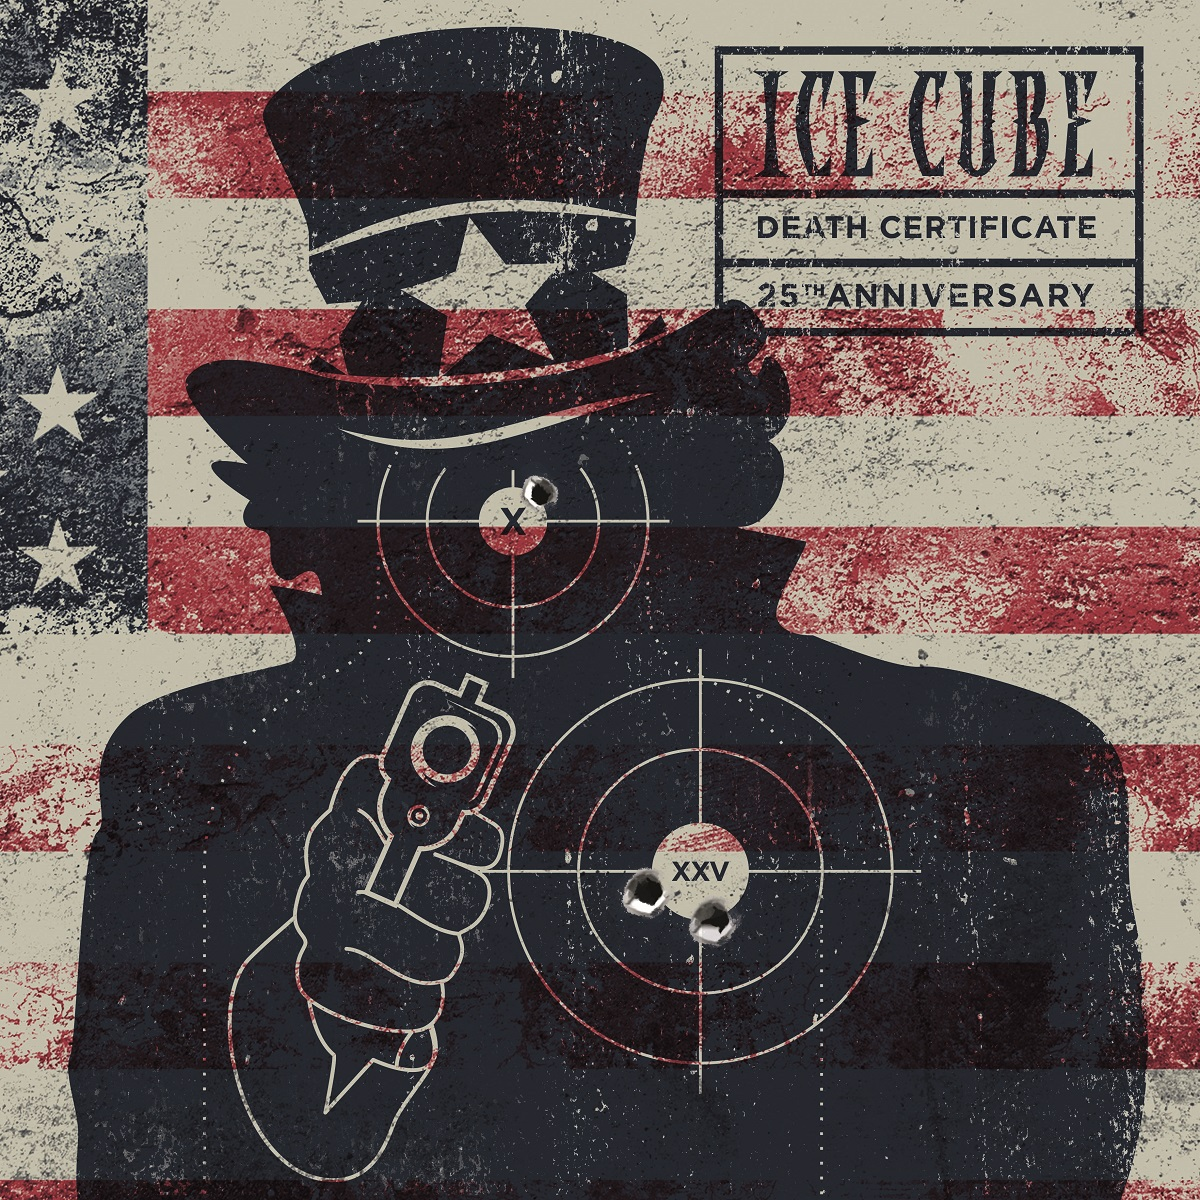 Ice cube drops reissue of 1991s death certificate the source ice cube drops reissue of 1991s death certificate 1betcityfo Choice Image